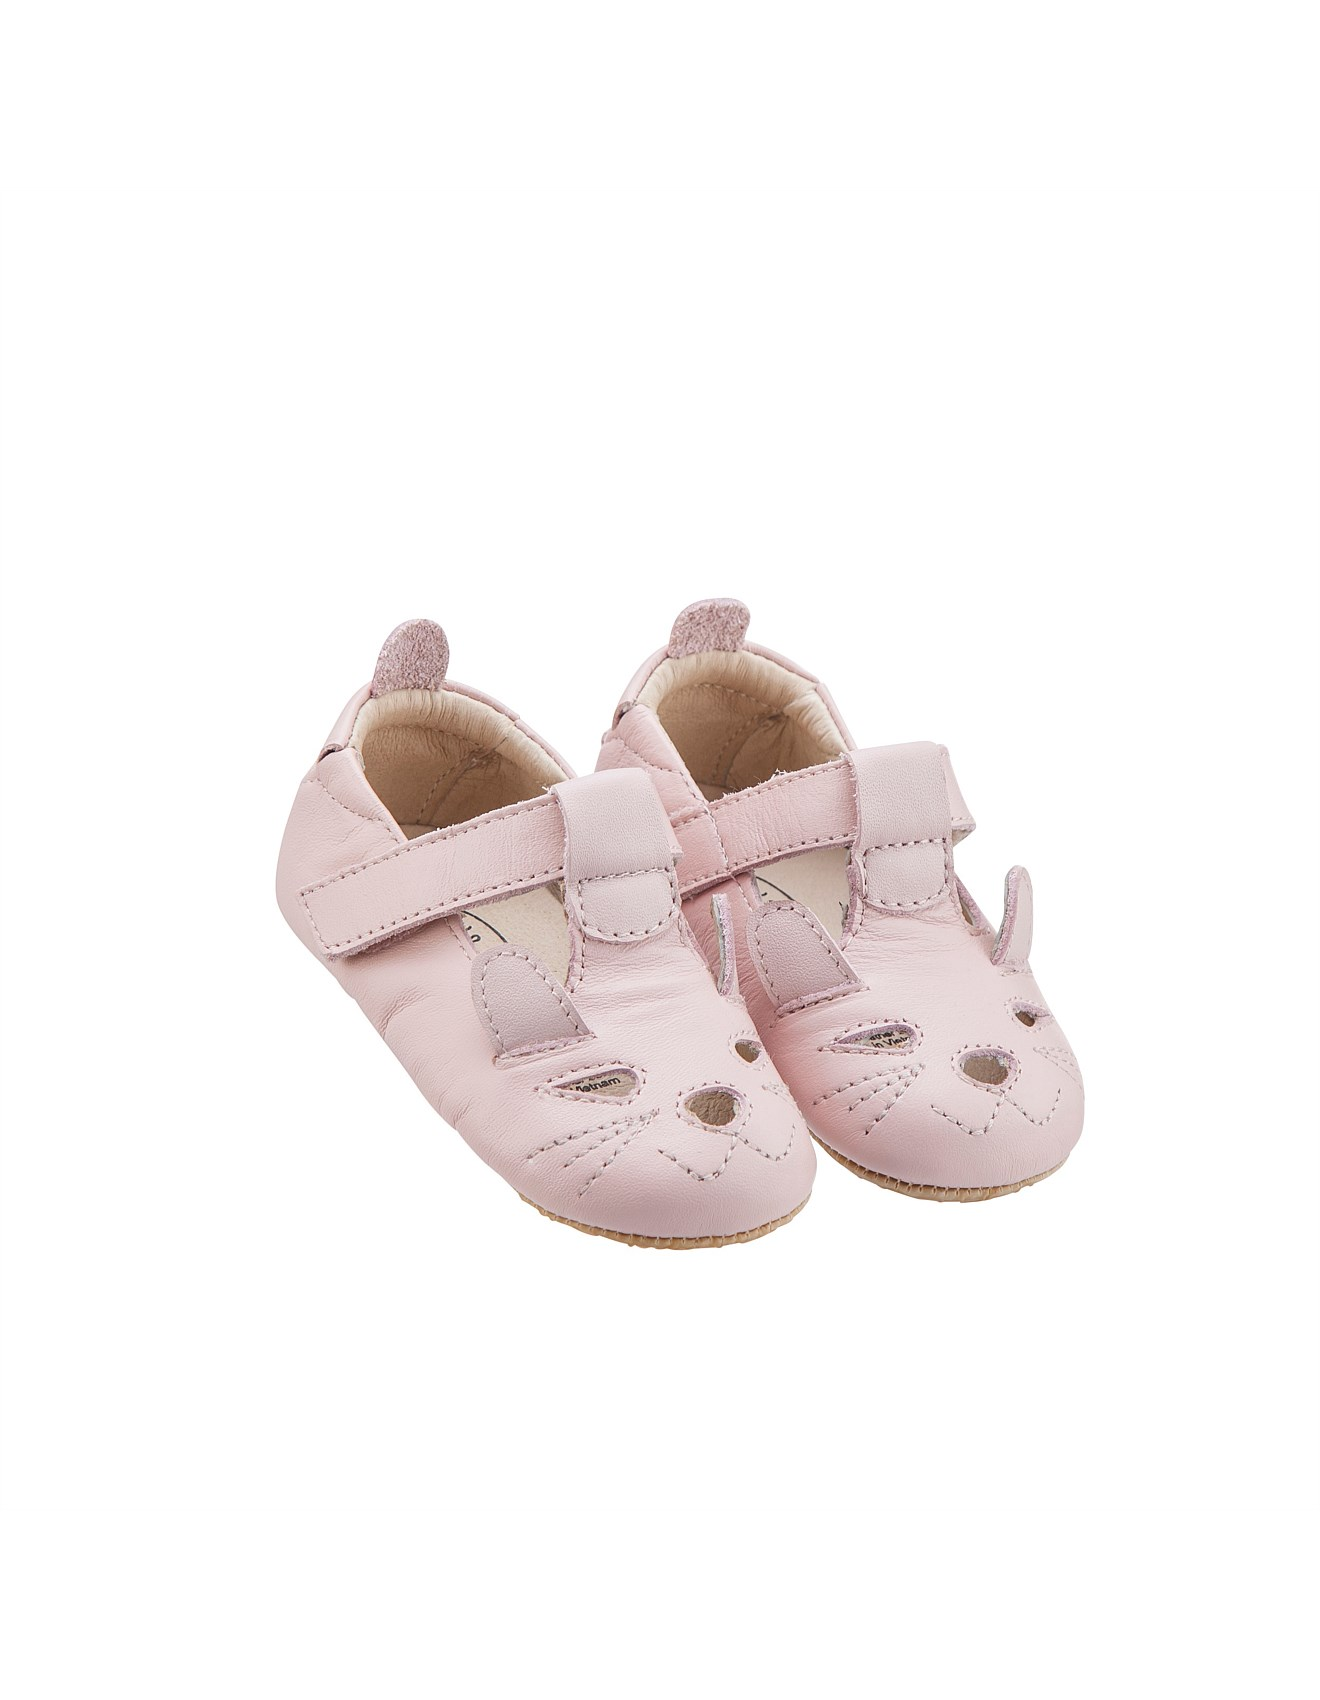 Isofix Sitzerhöhung Lösen Baby Slippers Maat 19 Manhattan Store Go To It Anpan Man